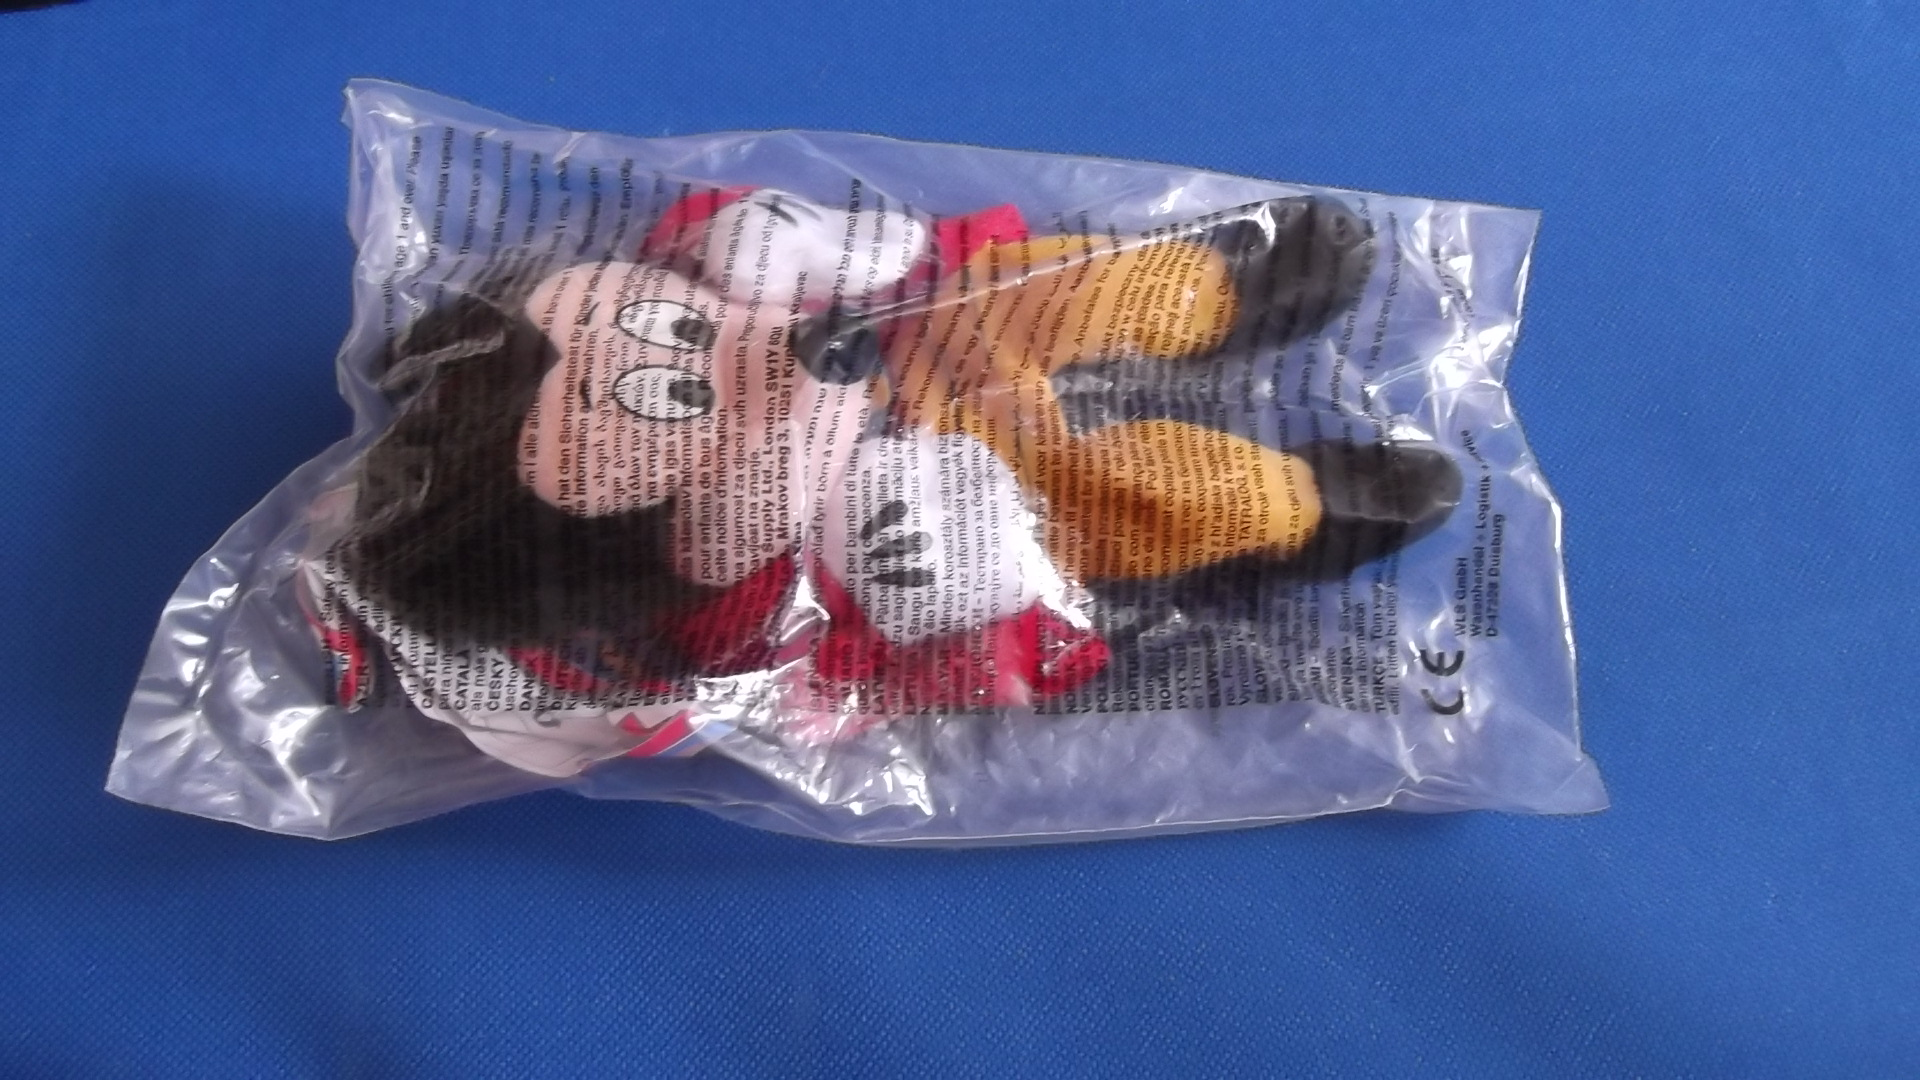 McDonalds Disneyland Paris Mickey Mouse Toy From 2001 New